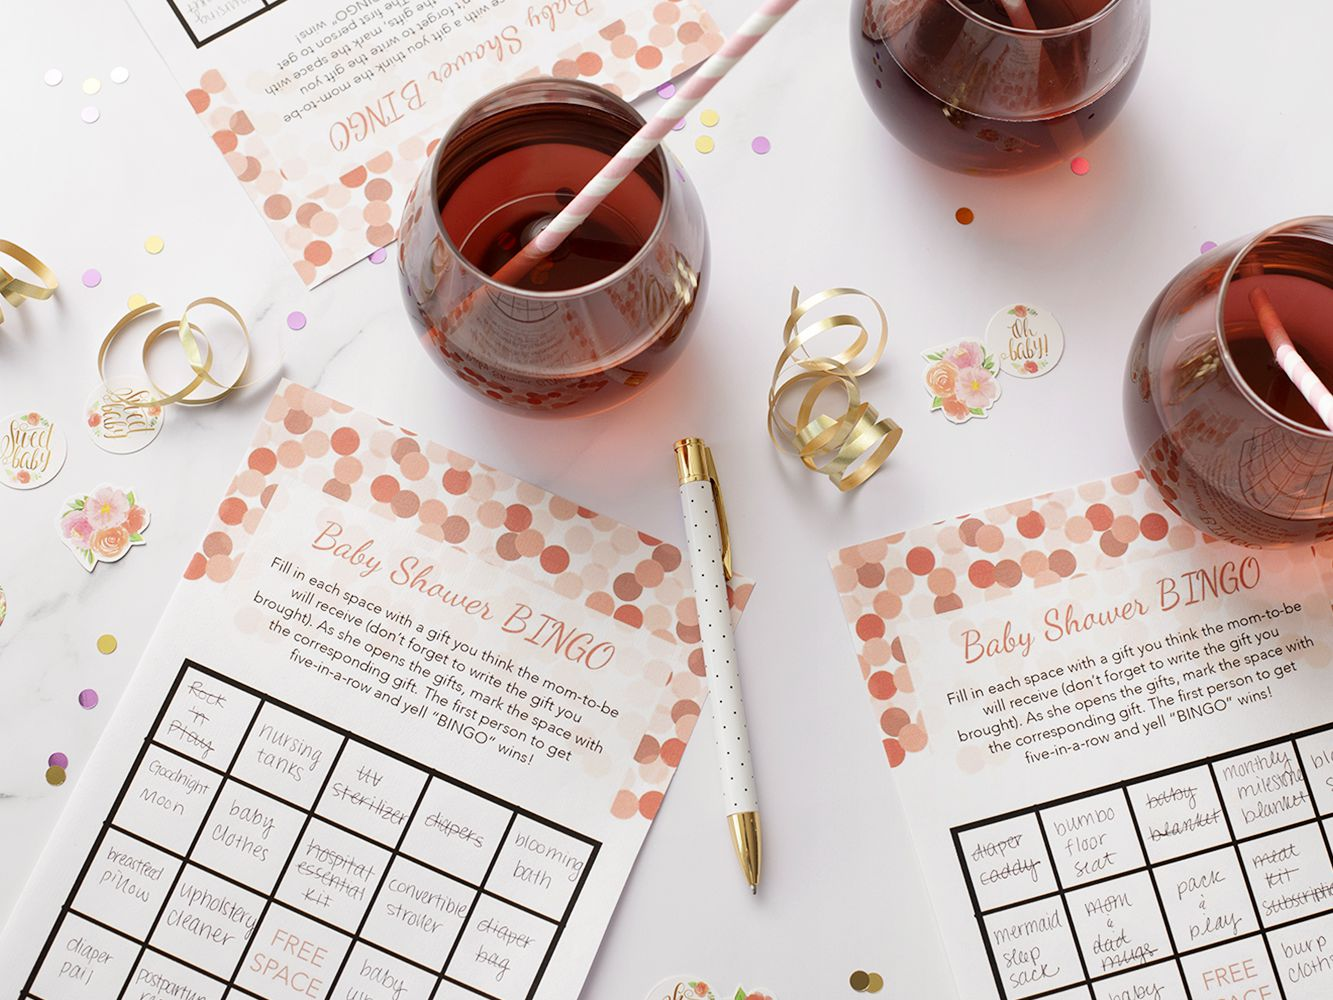 Free Baby Shower Bingo Cards Your Guests Will Love Throughout Blank Bingo Card Template Microsoft Word